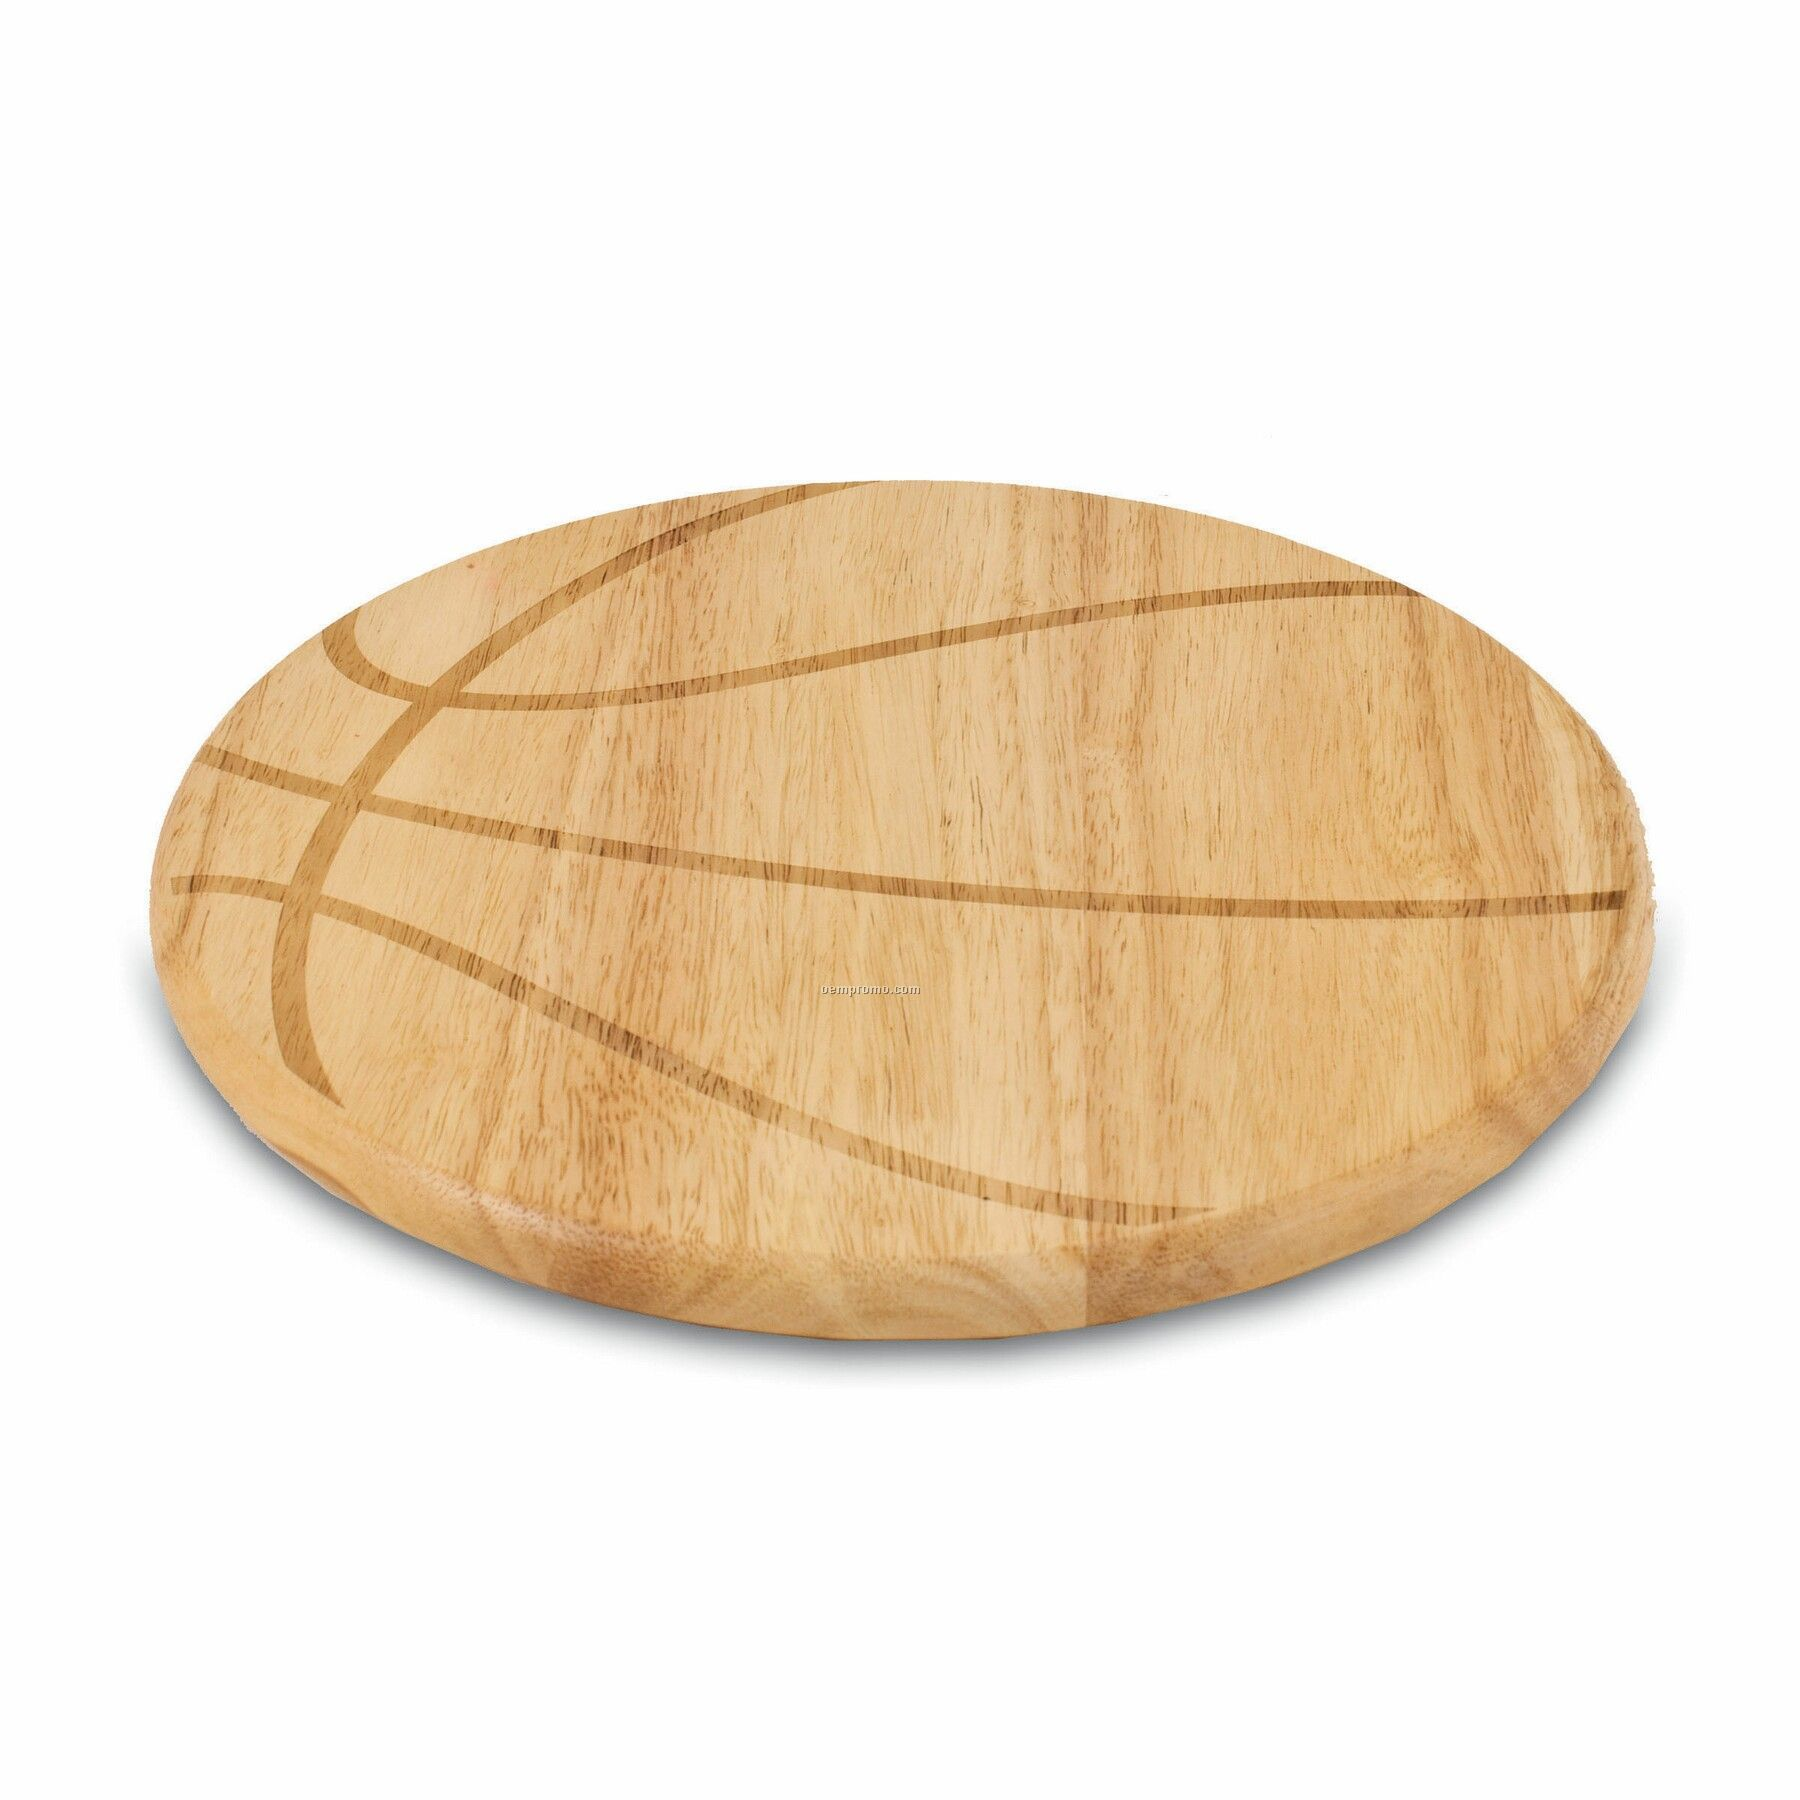 Free Throw Basketball Shaped Wood Cutting Board / Serving Tray